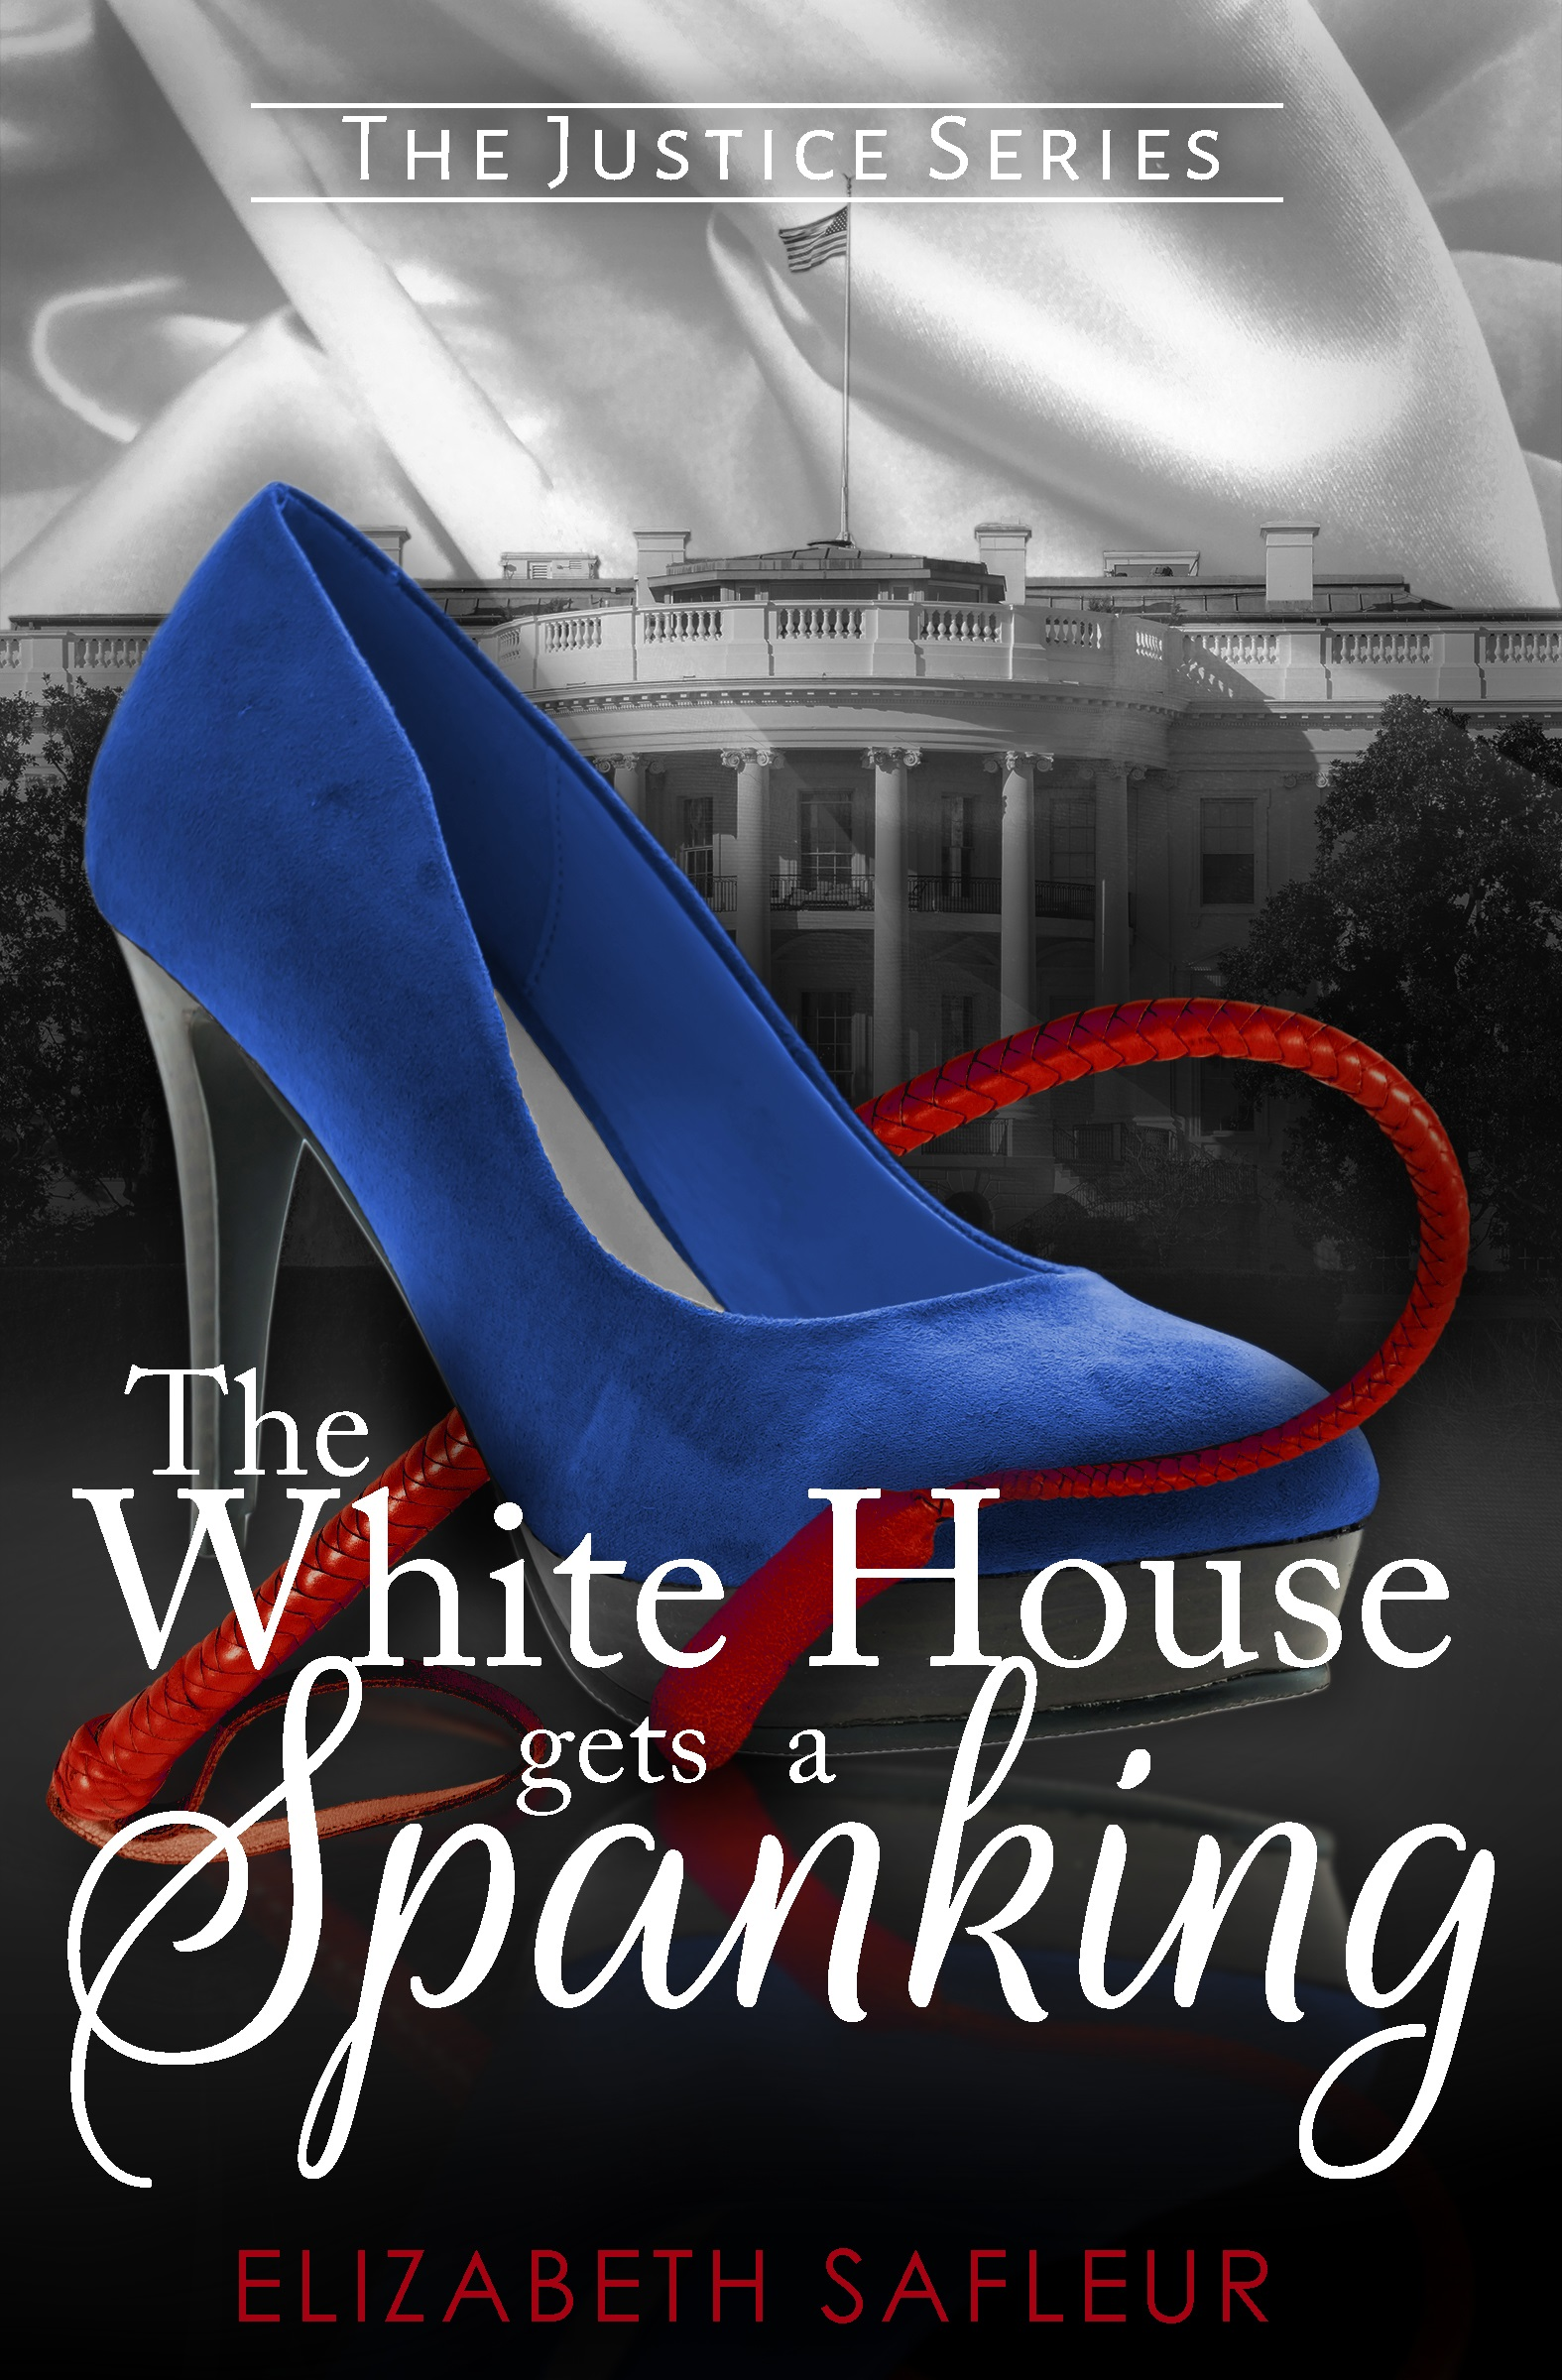 REVIEW: The White House Gets a Spanking by Elizabeth SaFleur